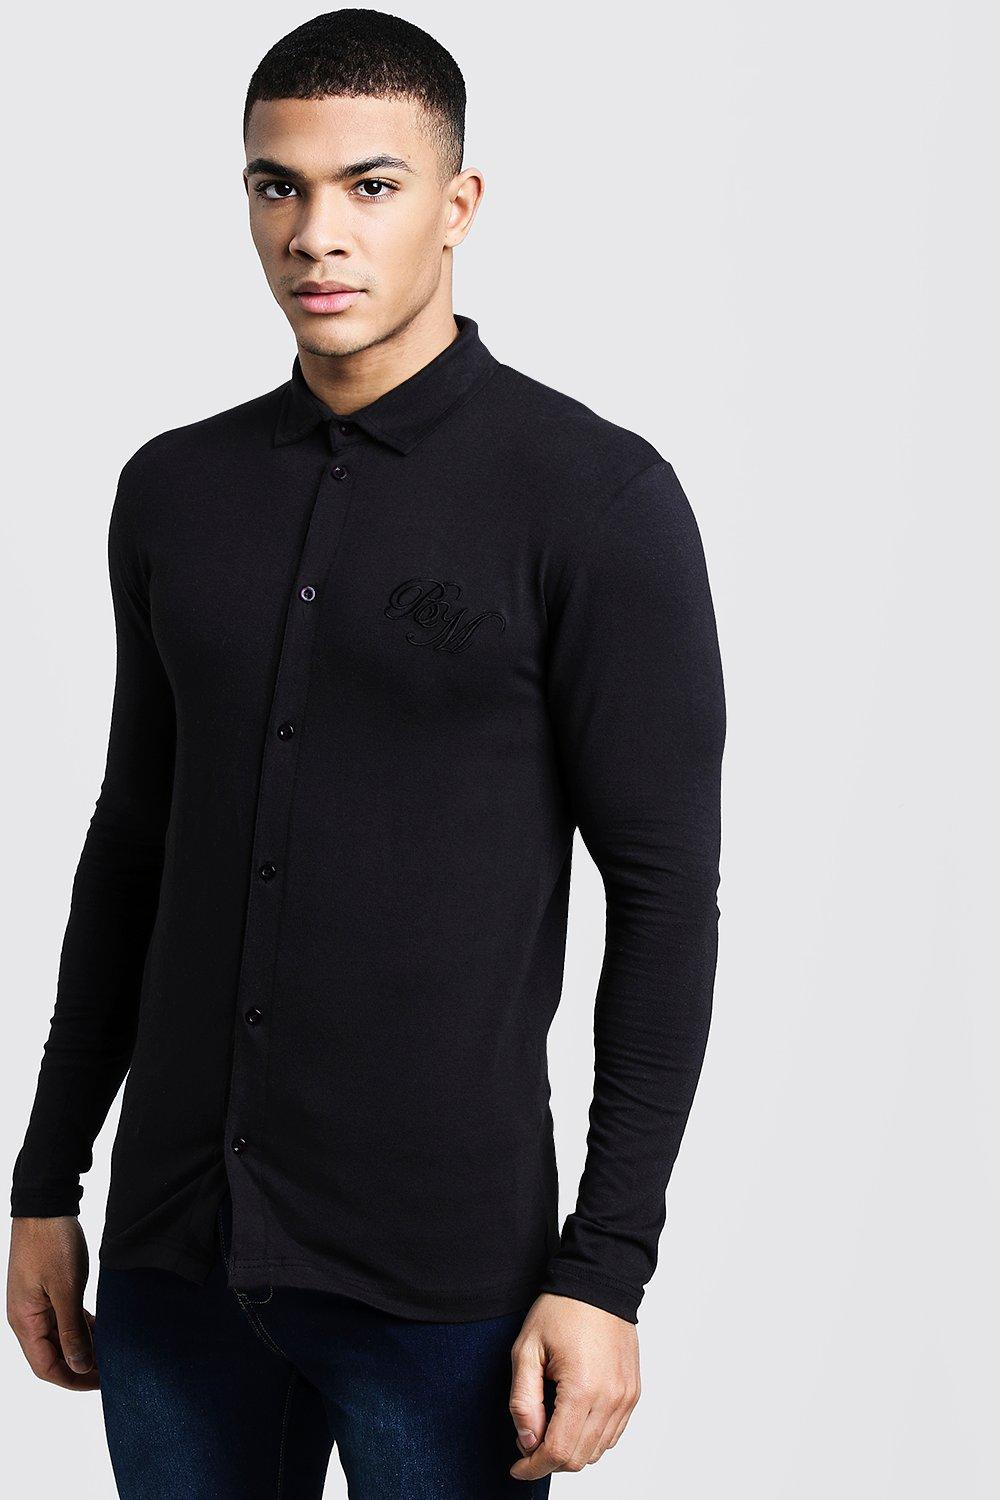 Long Sleeve Muscle Fit Jersey Shirt With BM Logo